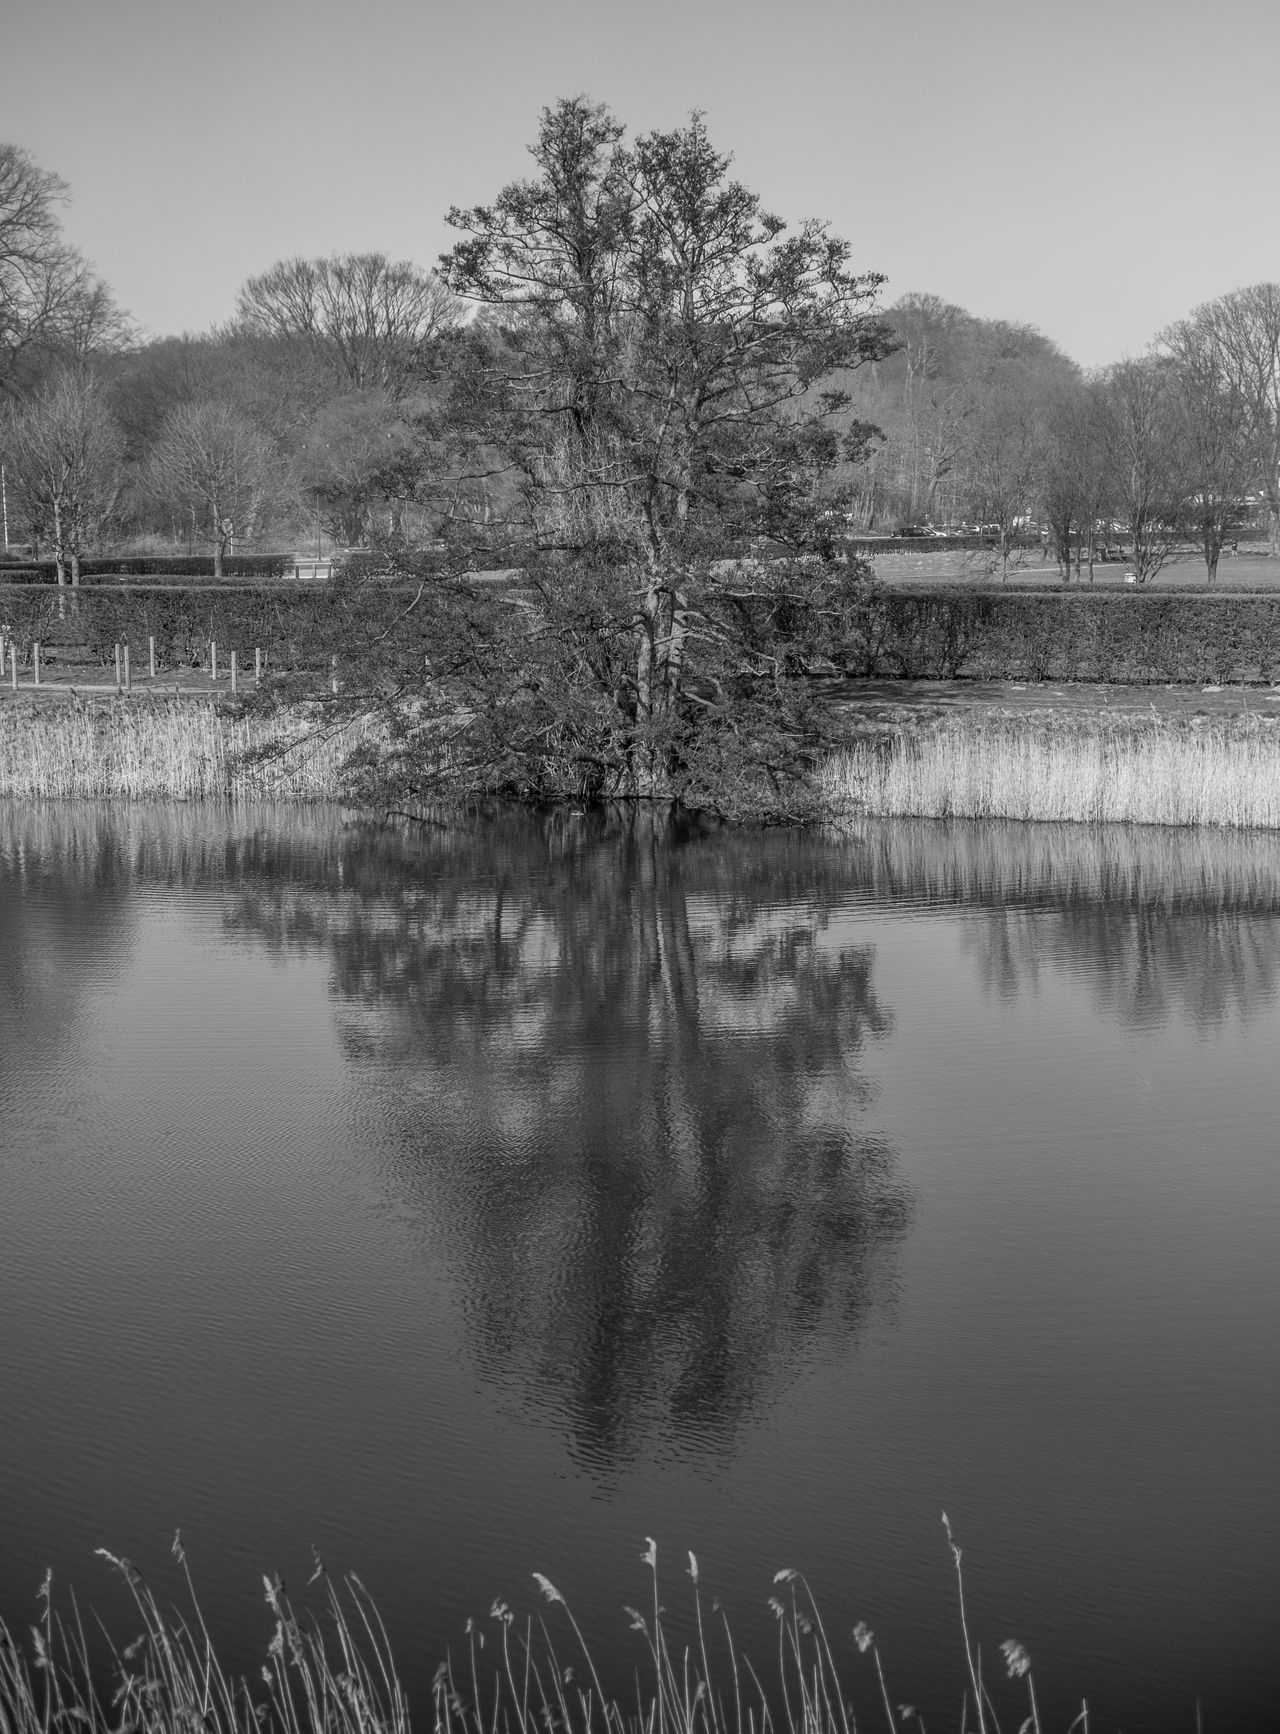 Beauty In Nature Blackandwhite Clear Sky Copy Space Day Growth Lake Landscape Landscape_Collection Nature No People Outdoors Plant Reflection Reflections Reflections In The Water Scenics Sky Tranquil Scene Tranquility Tree Water